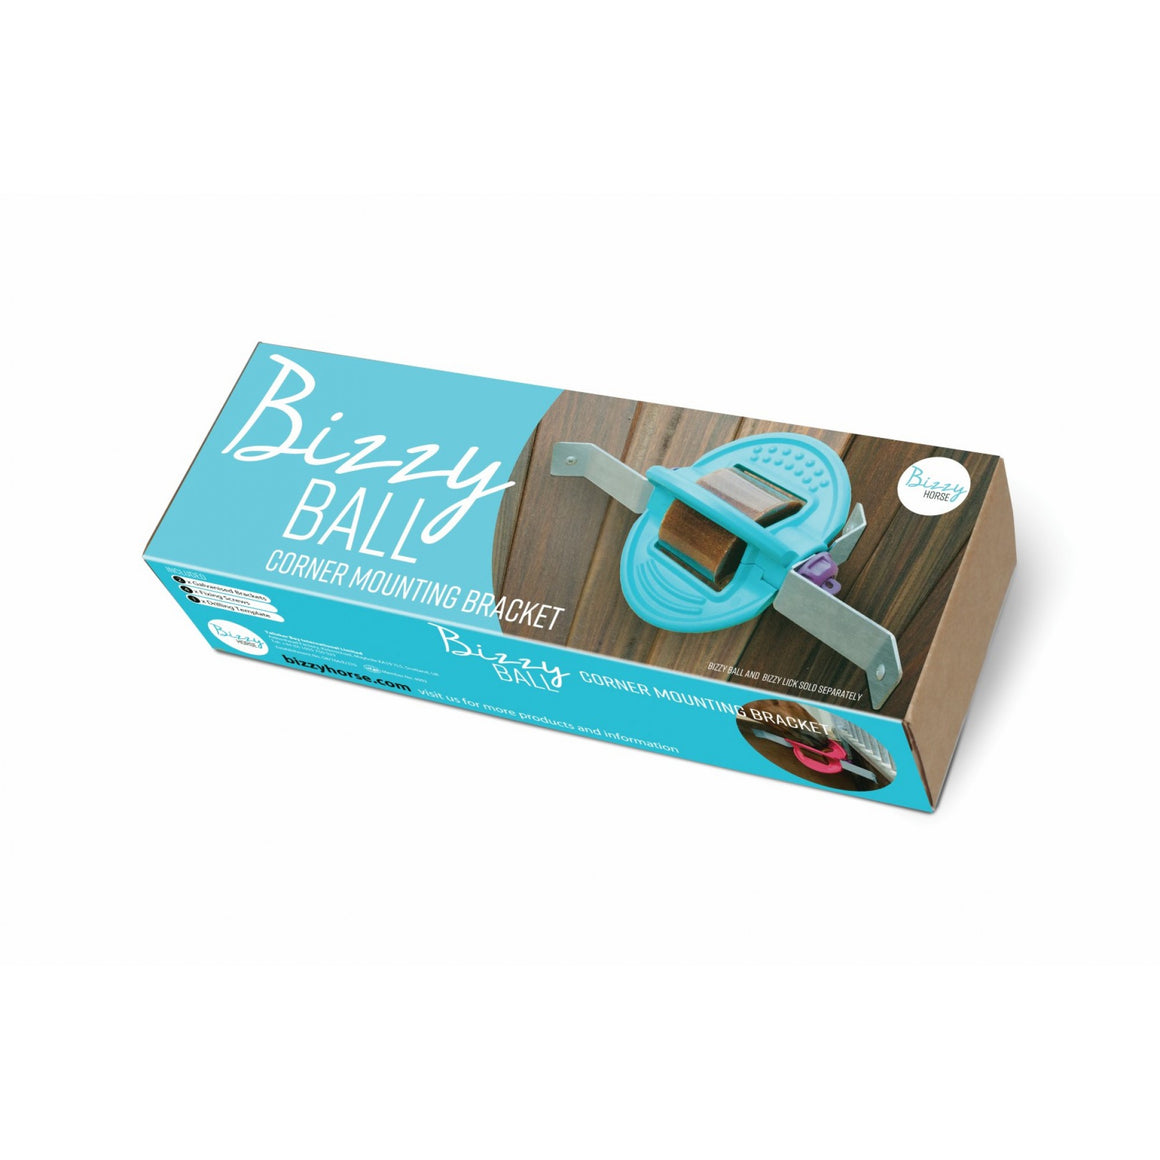 Bizzy Horse Corner Mounting Bracket for Bizzy Ball